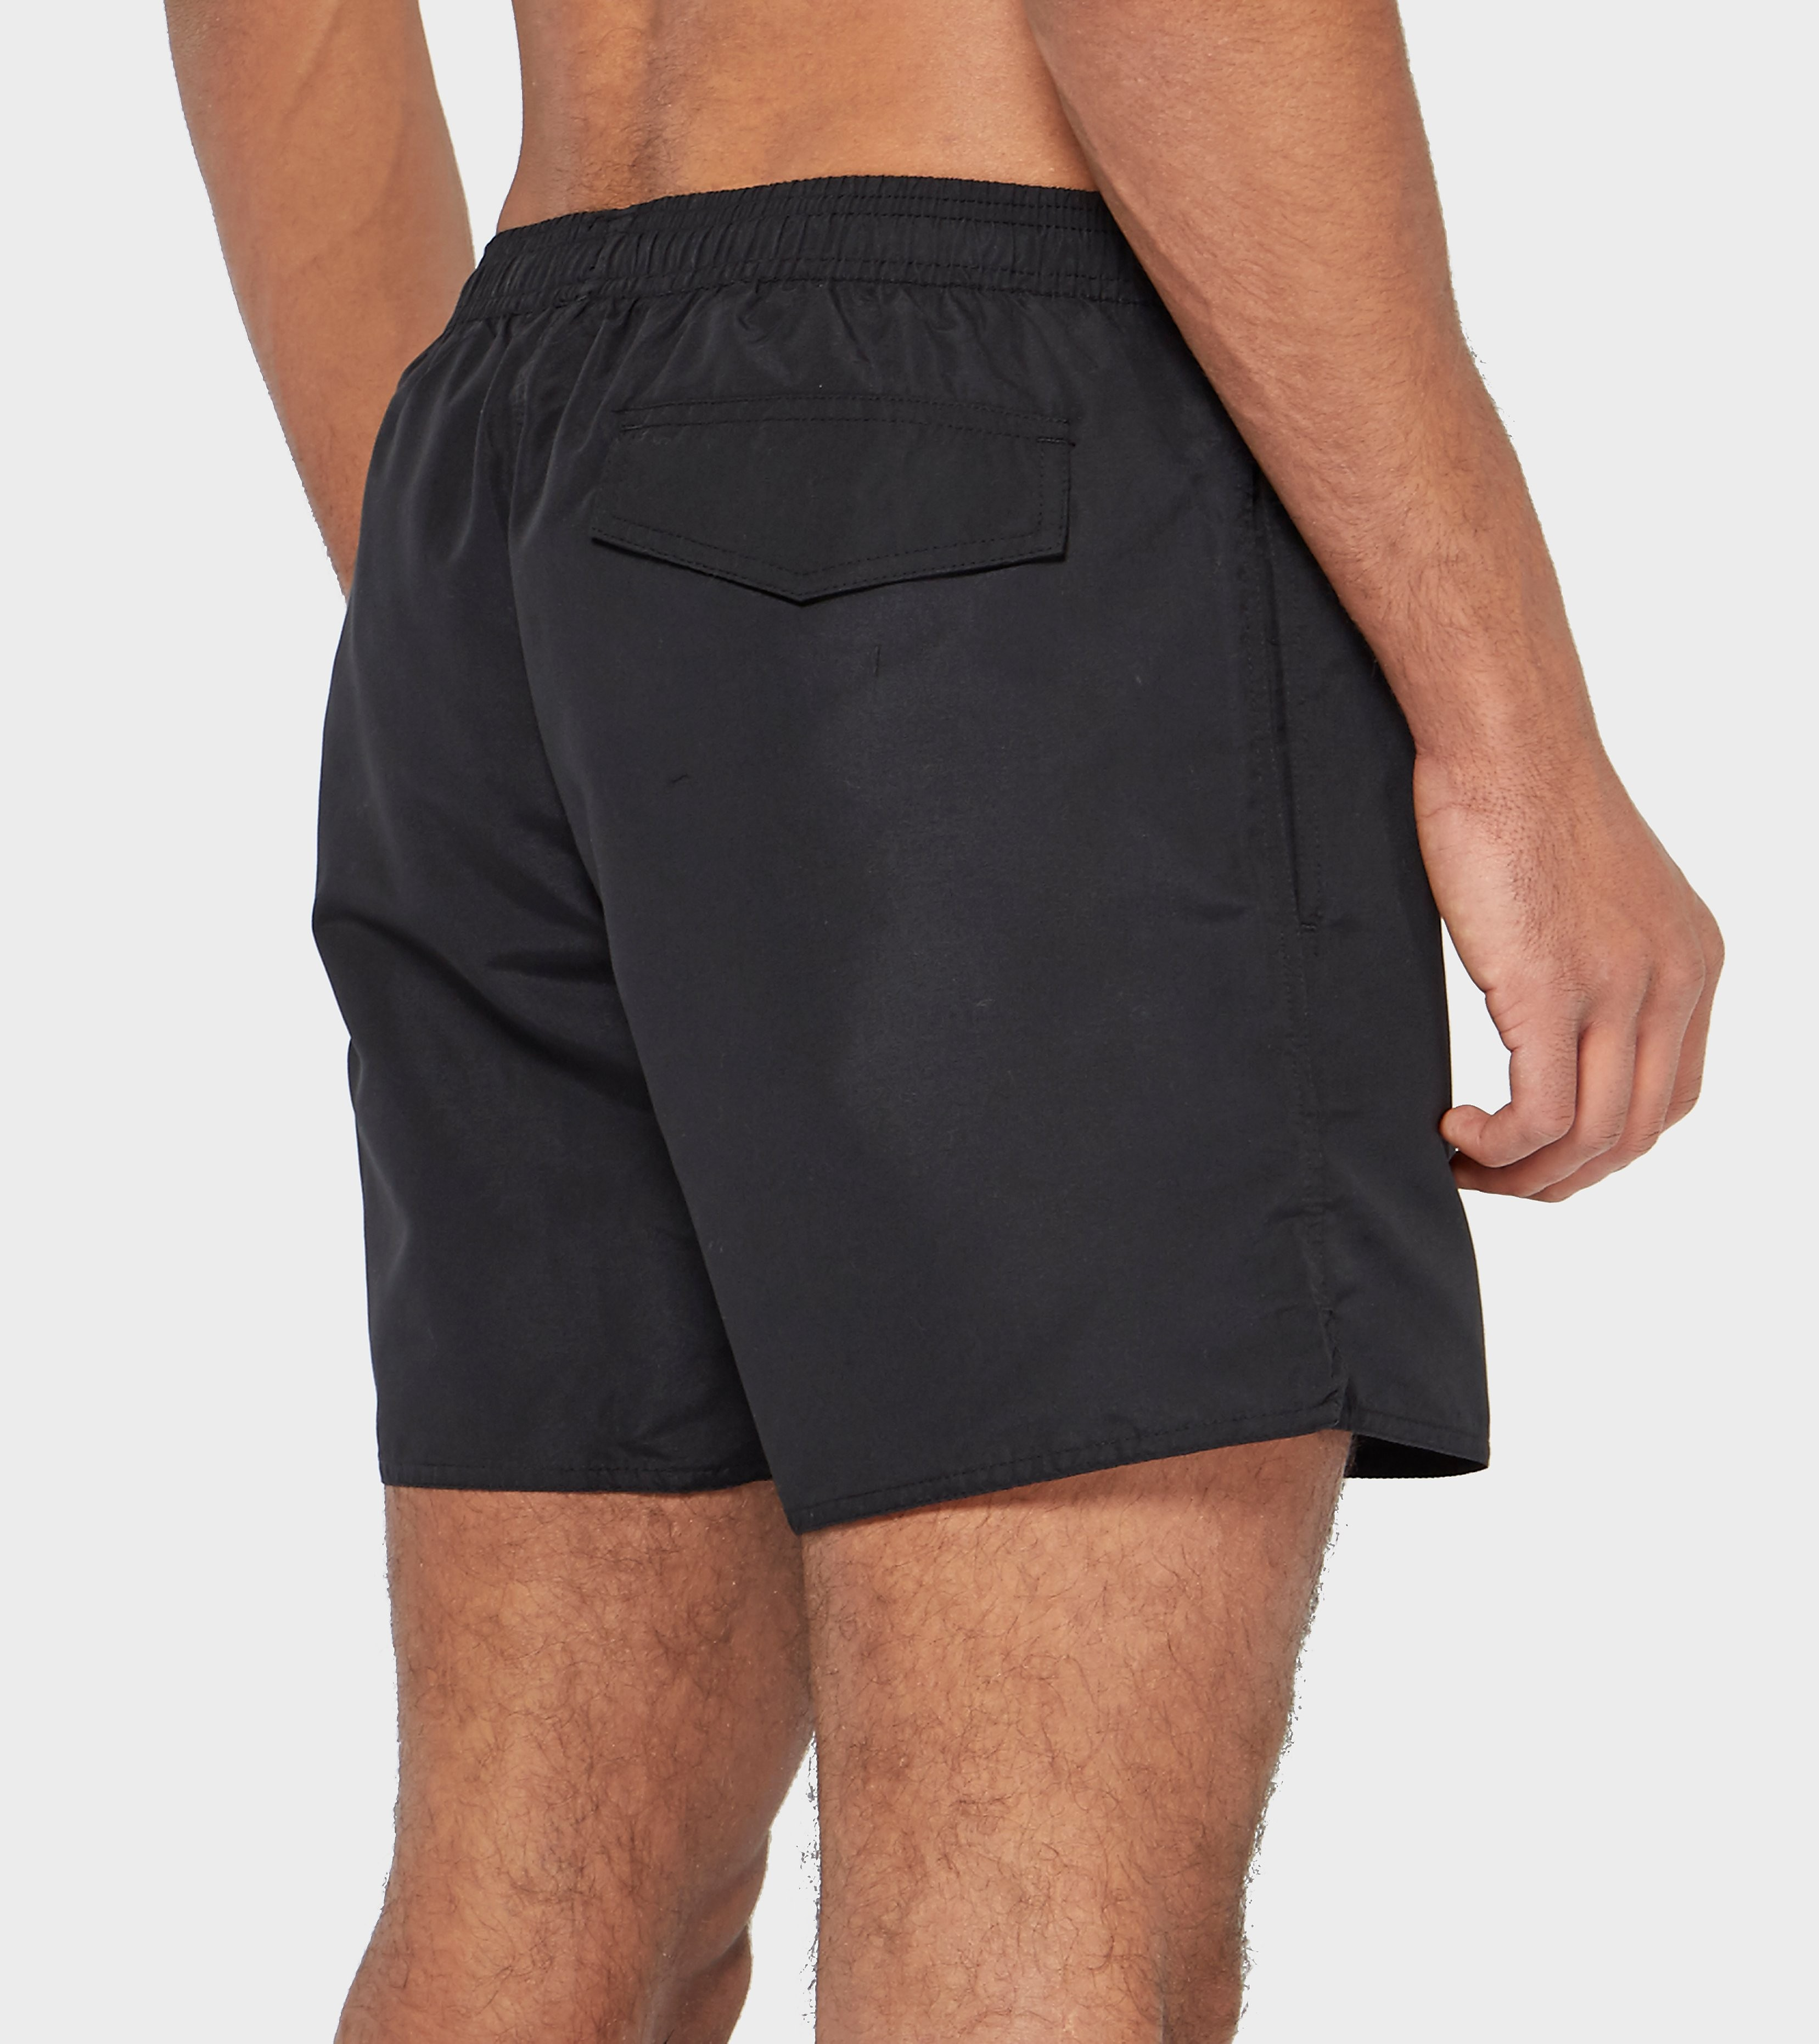 Emporio Armani EA7 Core Swimmer Swim Shorts